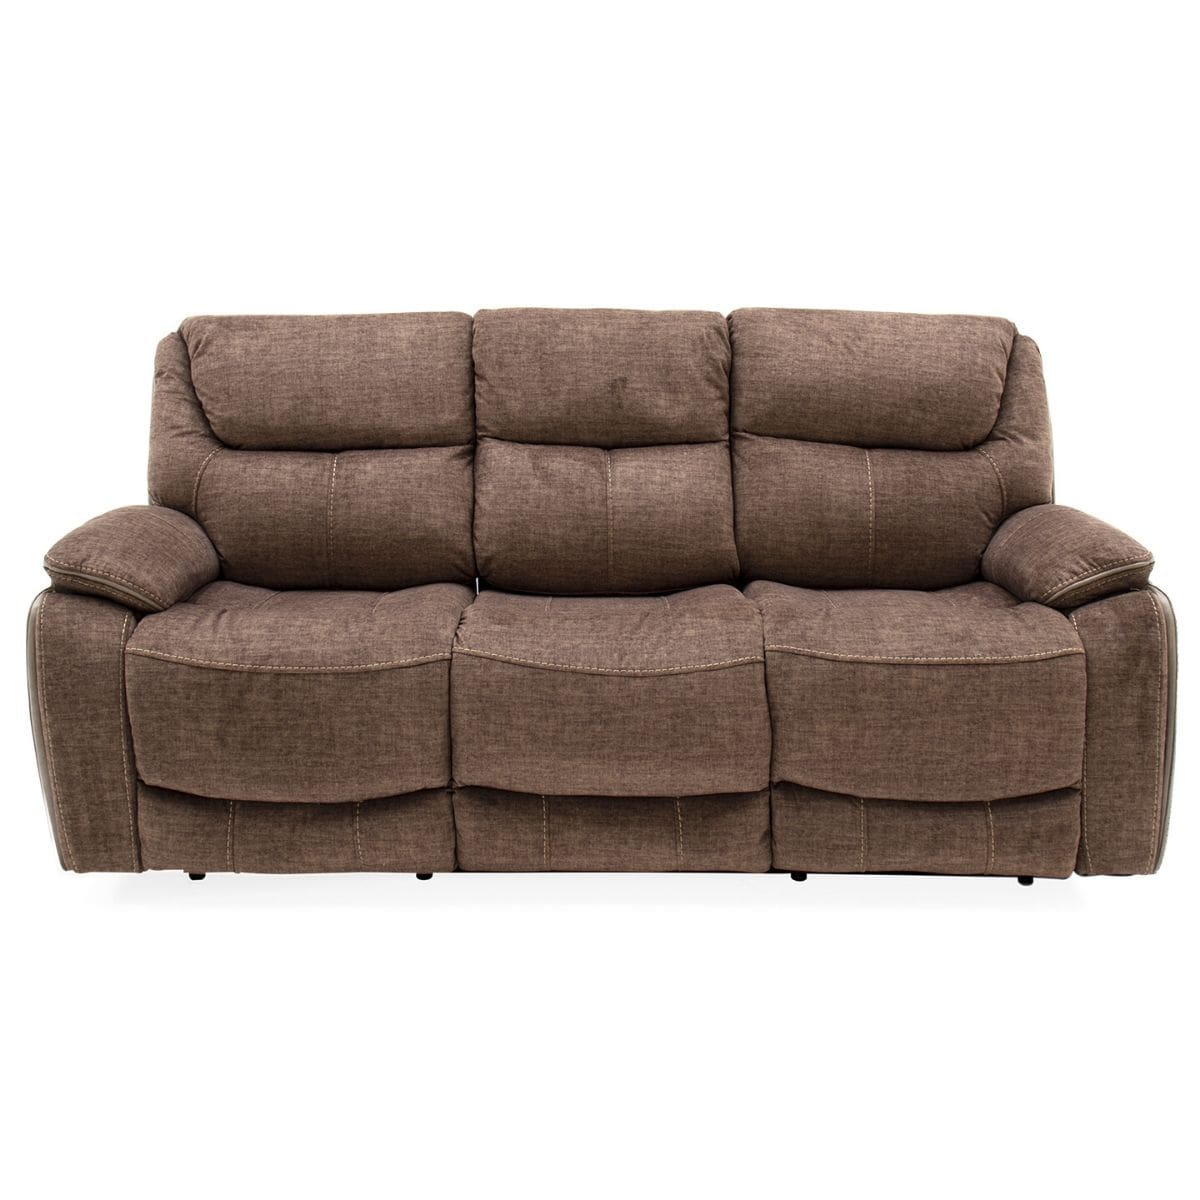 Stephanie 3 Seater Recliner